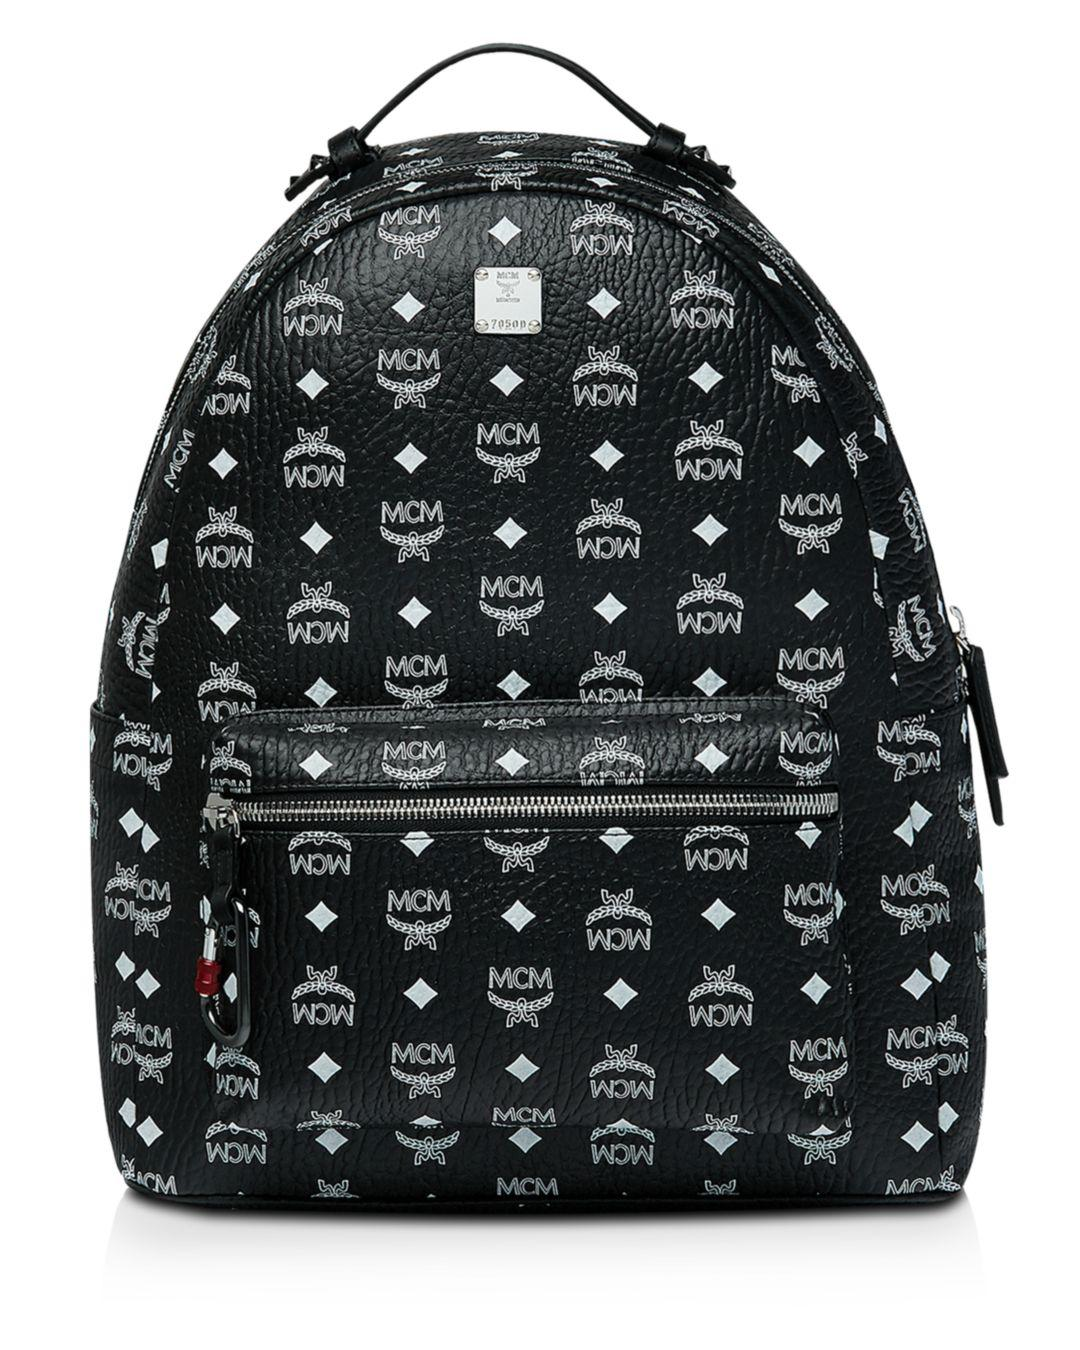 f3ceaa3c7490 MCM - Black Logo Print Backpack for Men - Lyst. View fullscreen